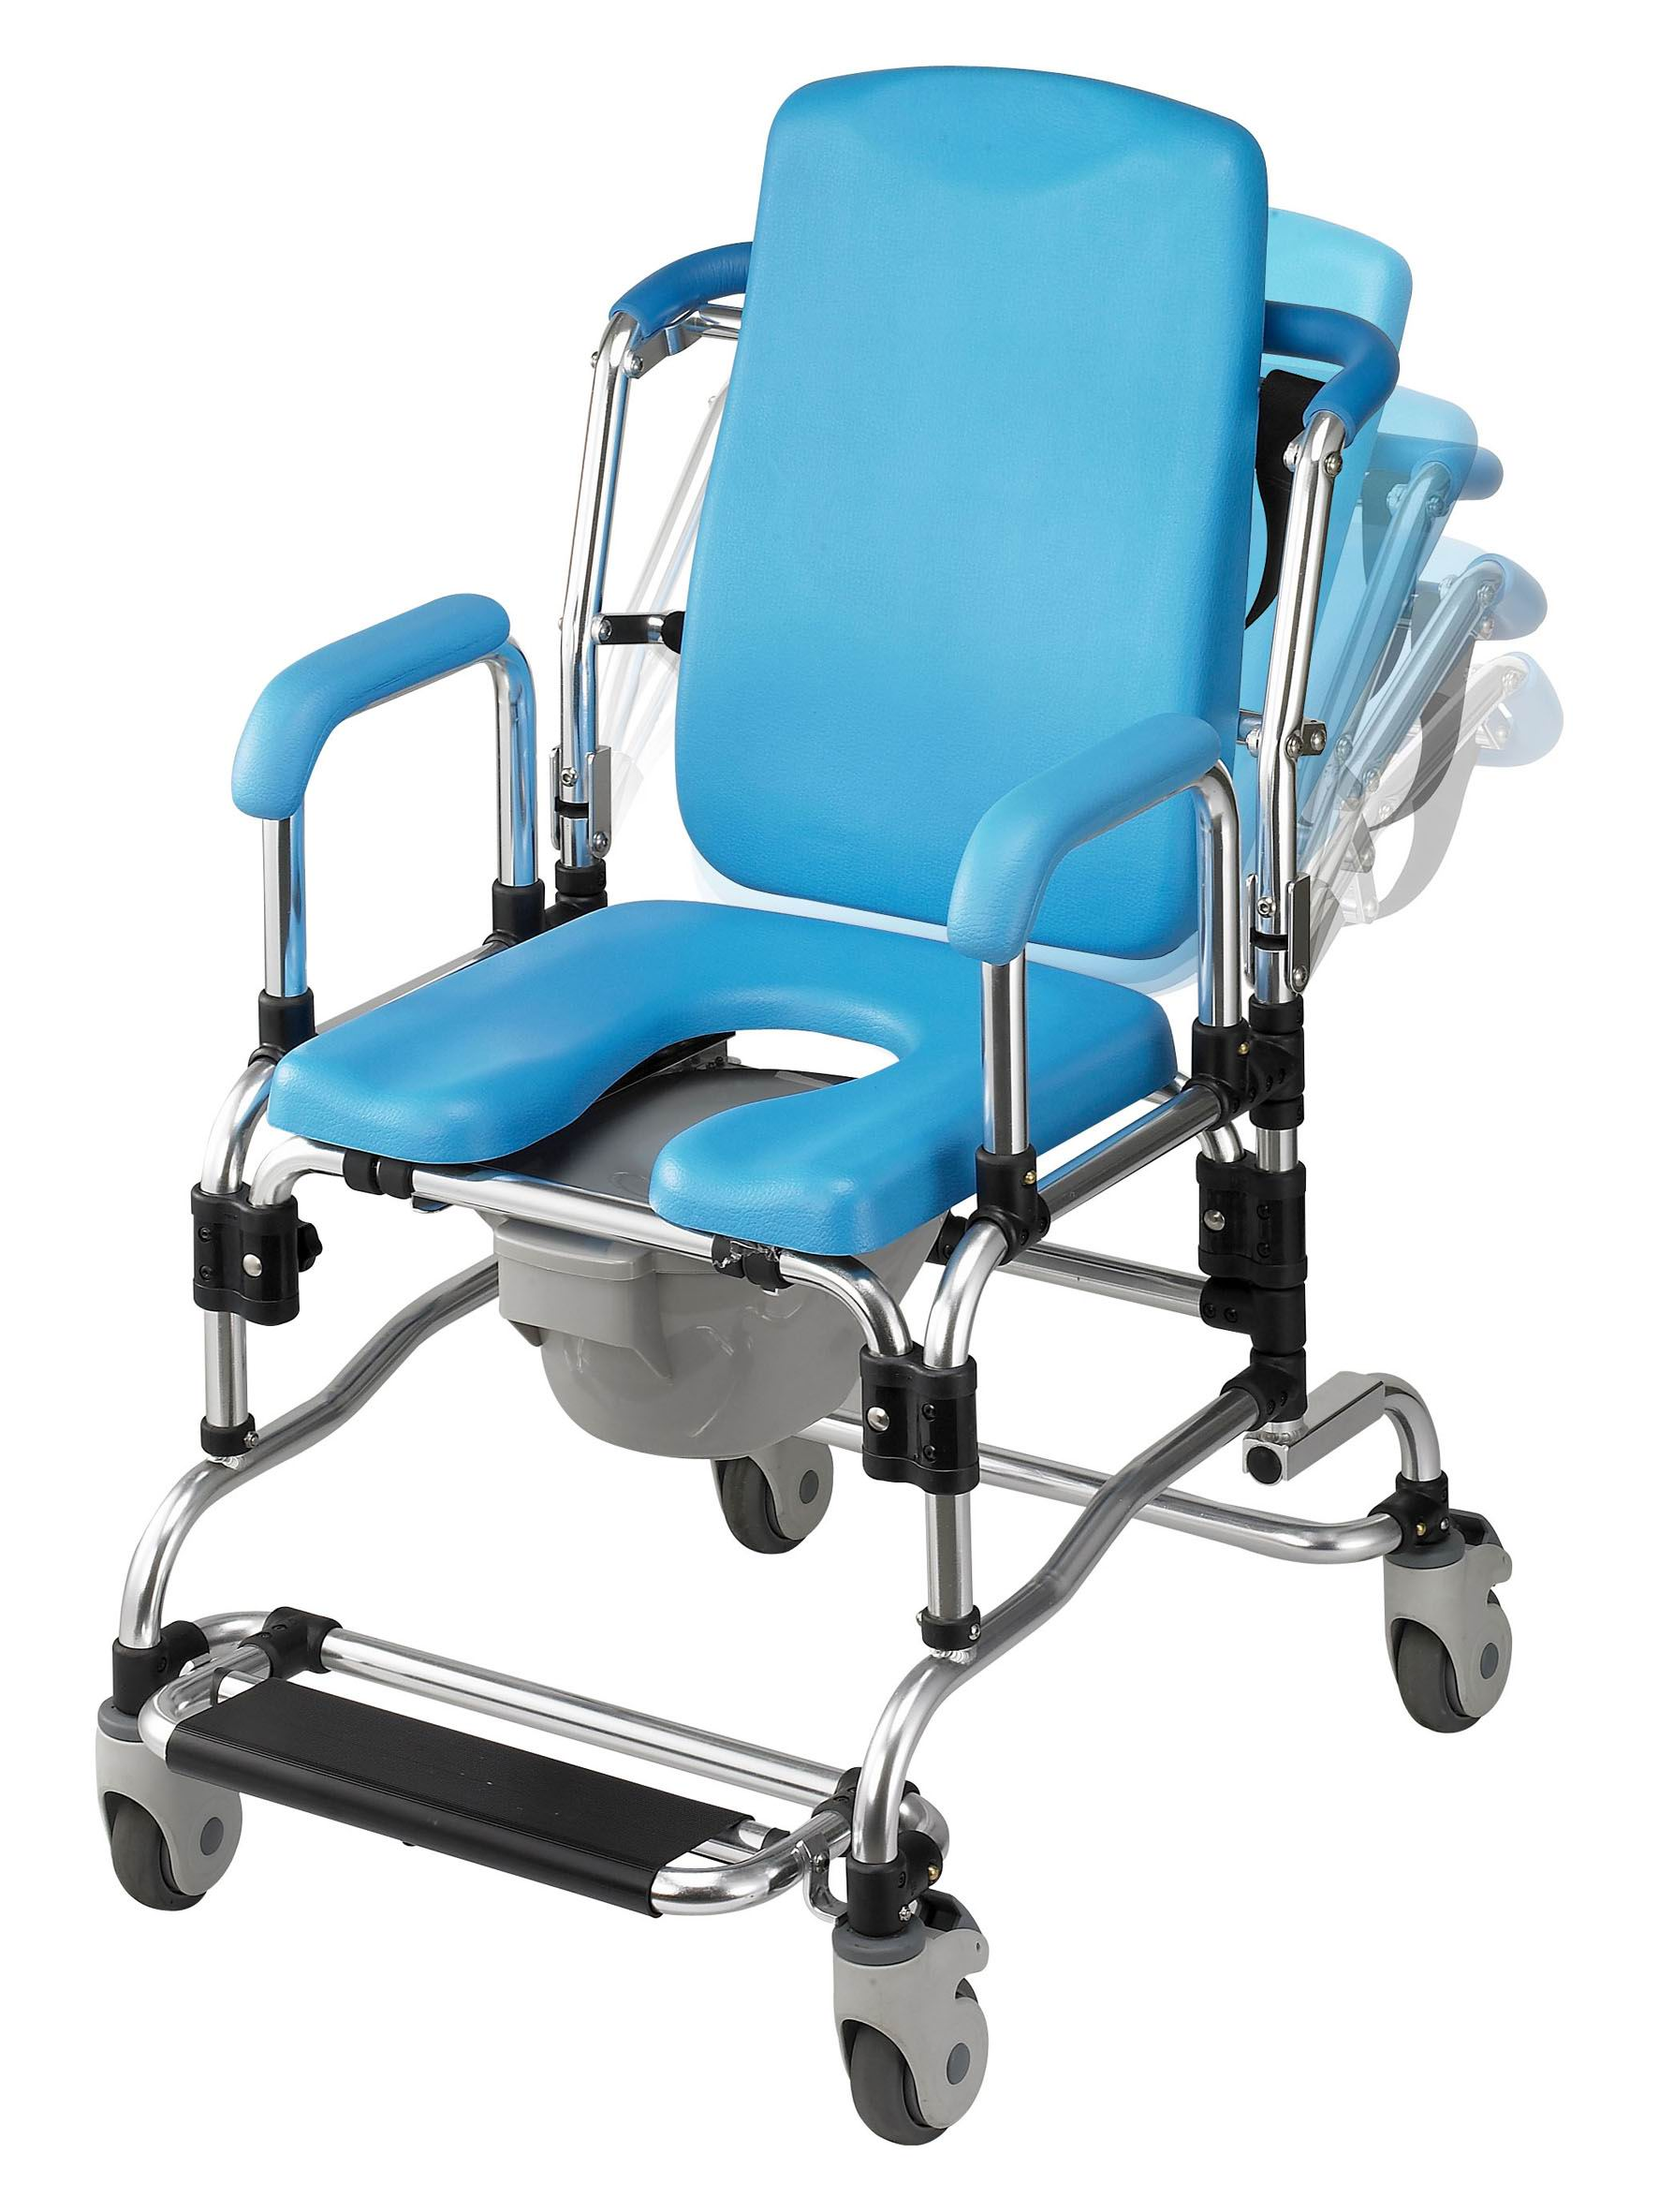 Laguna Professional Reclining Bath Shower Chair Institutional Quality  Padded Seat, Back, Armrests + FREE